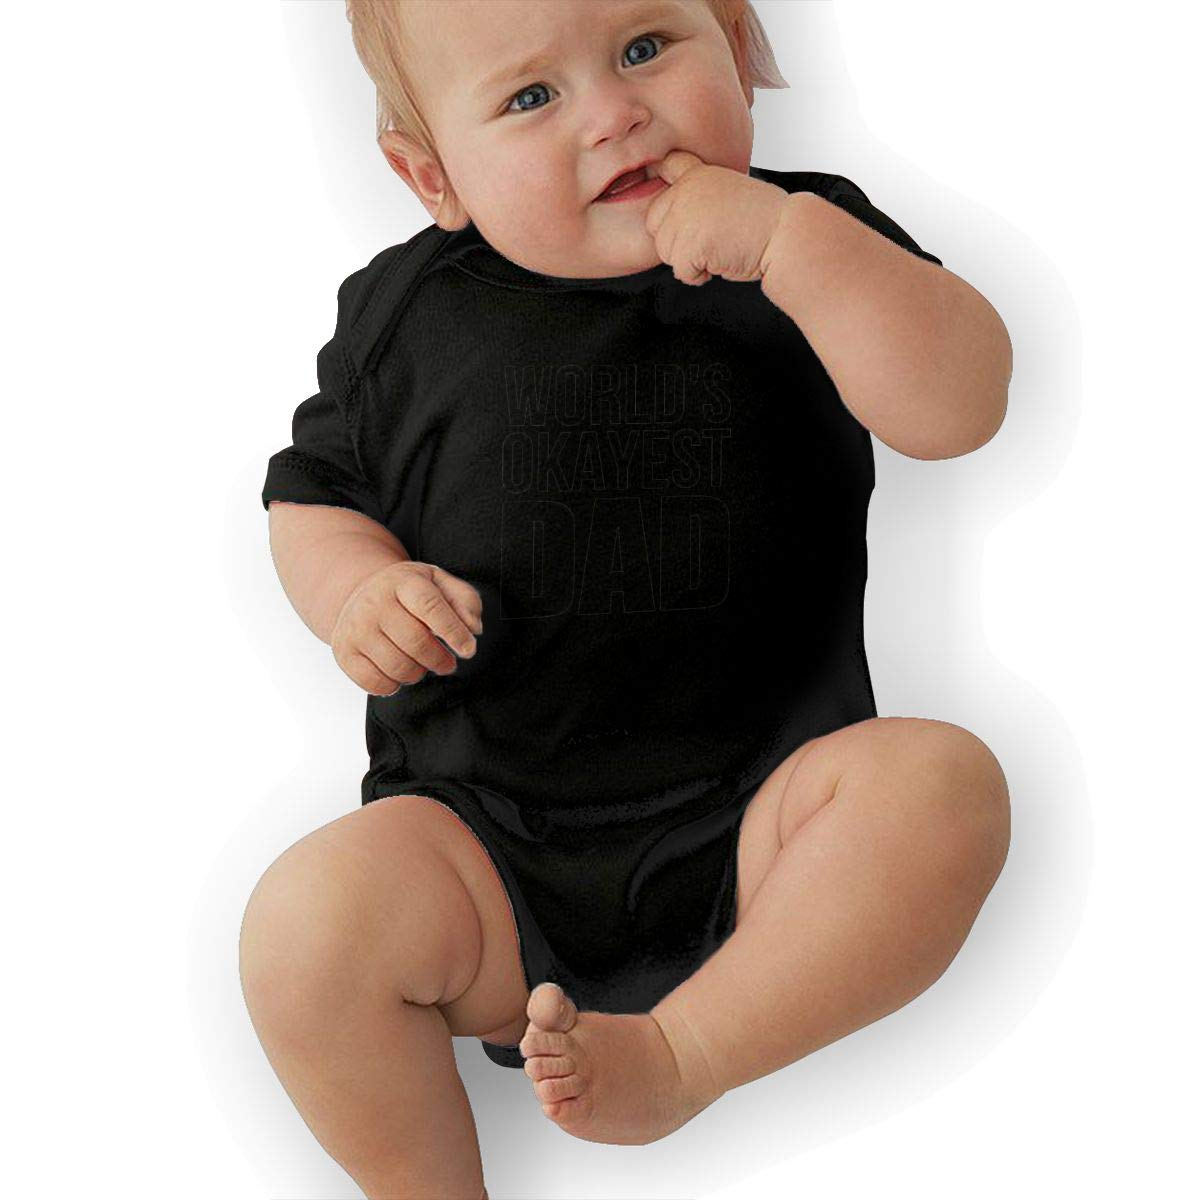 HappyLifea Okayest Dad 1 Baby Pajamas Bodysuits Clothes Onesies Jumpsuits Outfits Black